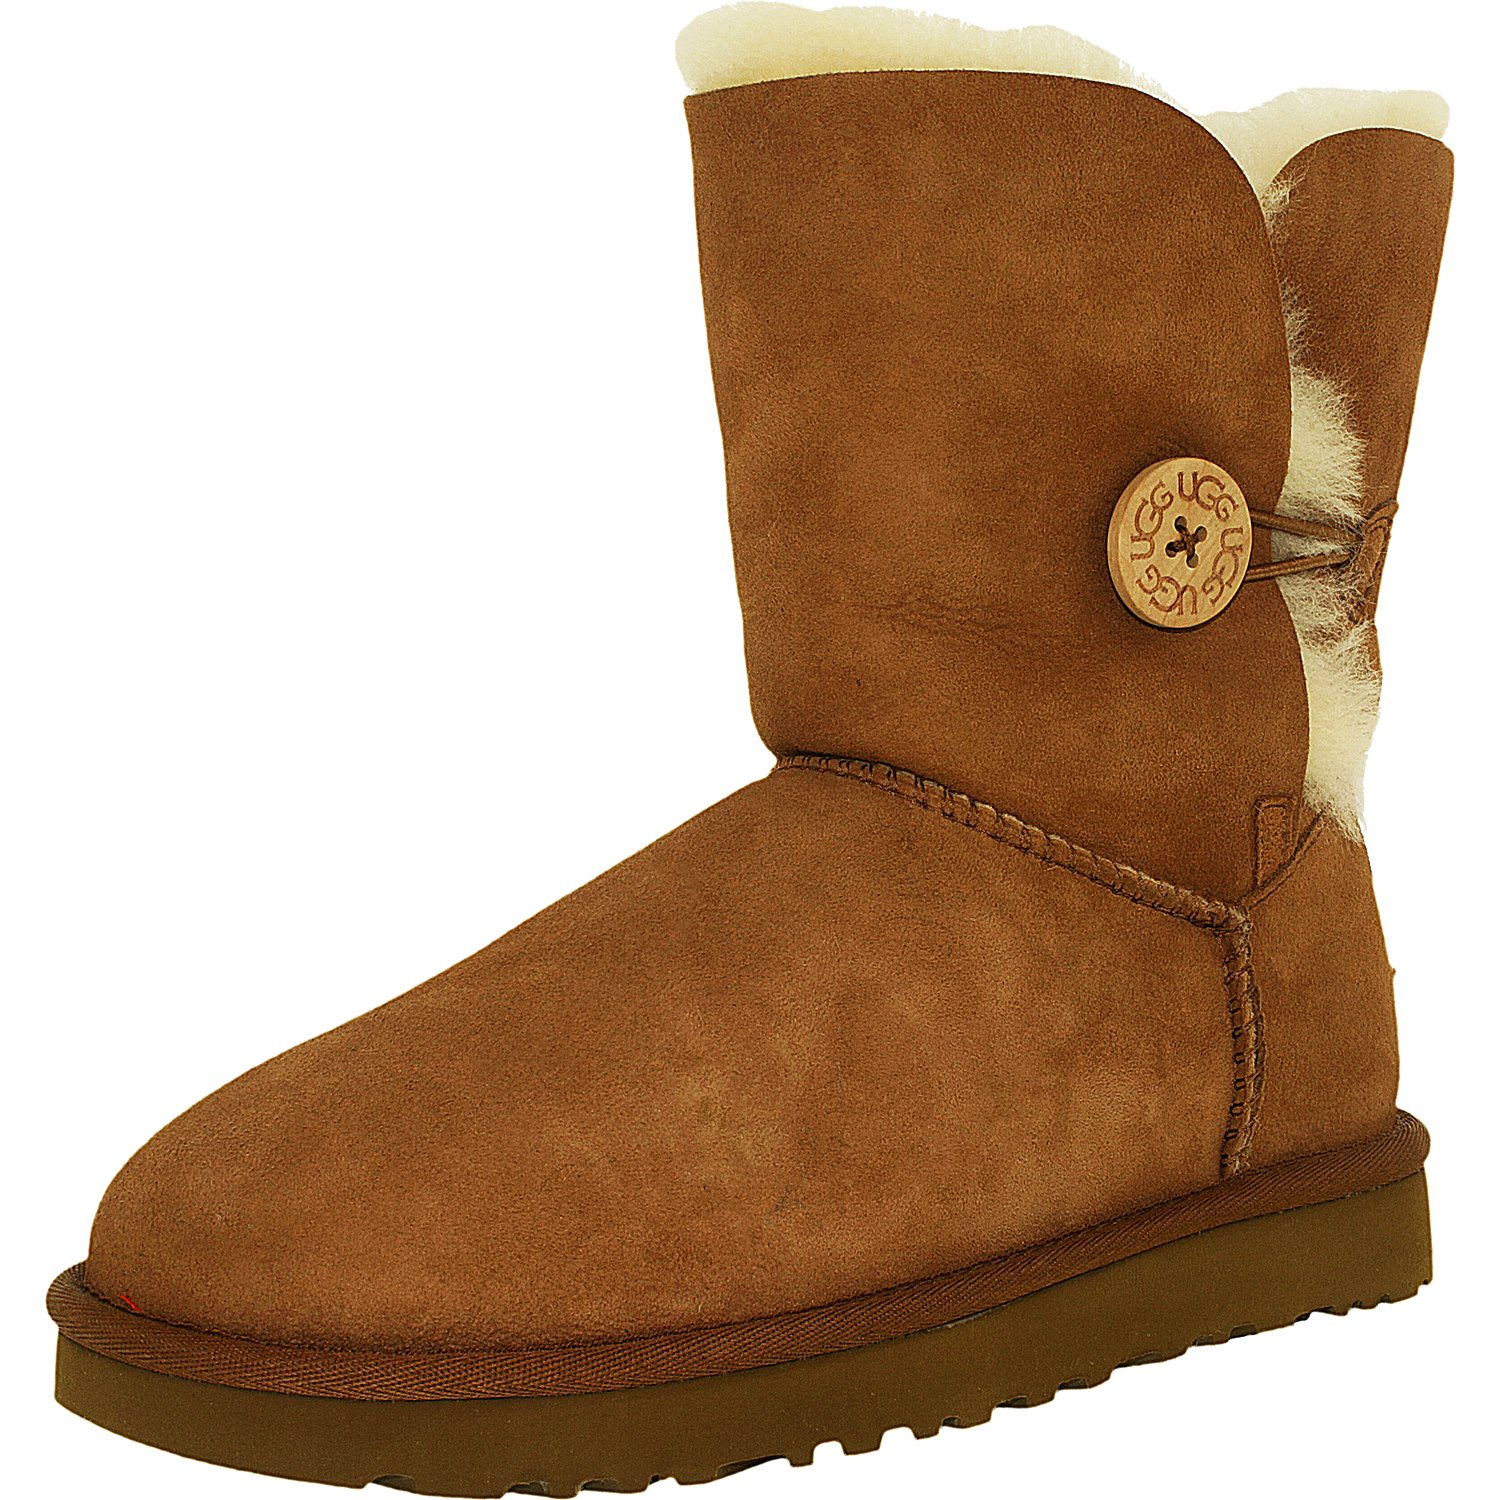 Ugg Women's Bailey Button II Chestnut High-Top Sheepskin ...